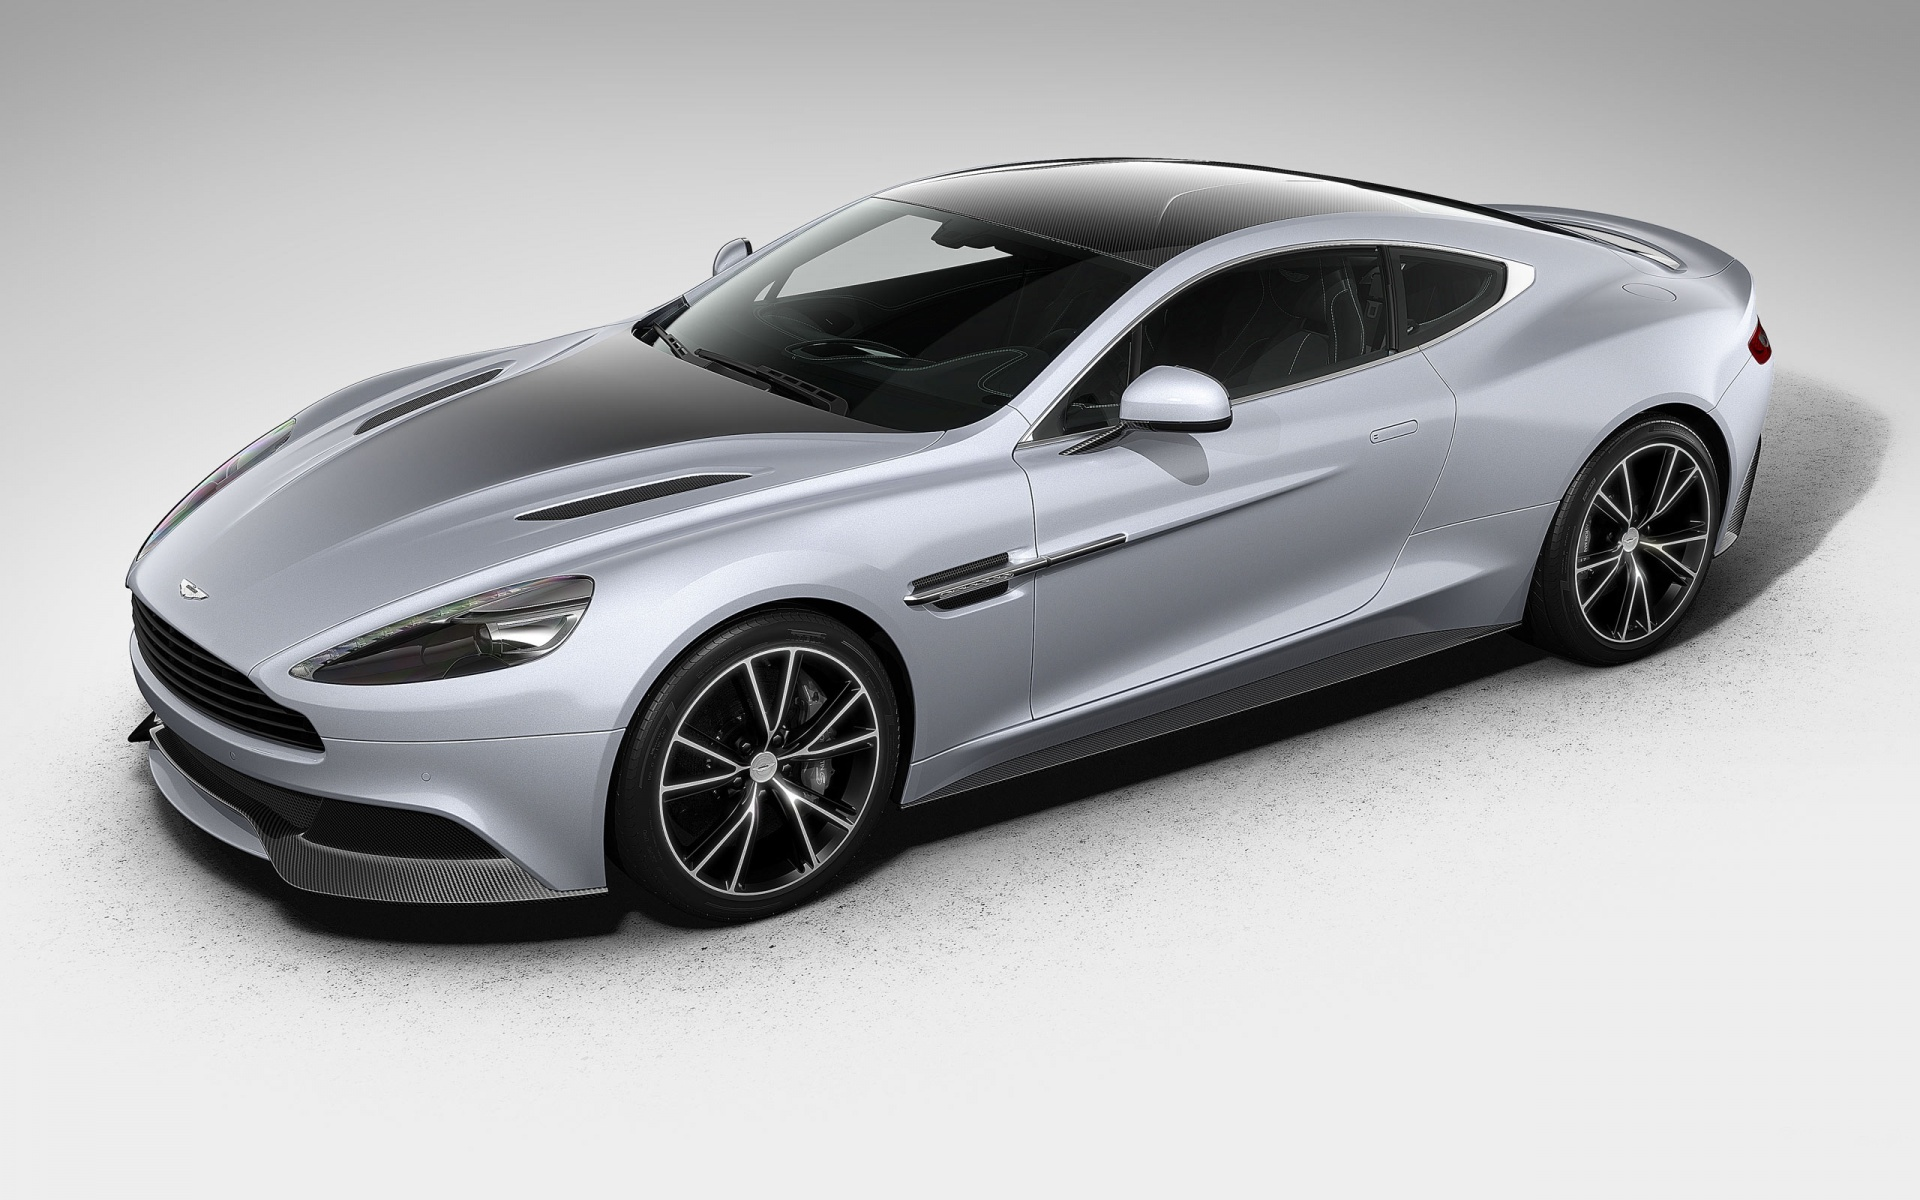 Aston Martin Vanquish-HD Wallpapers